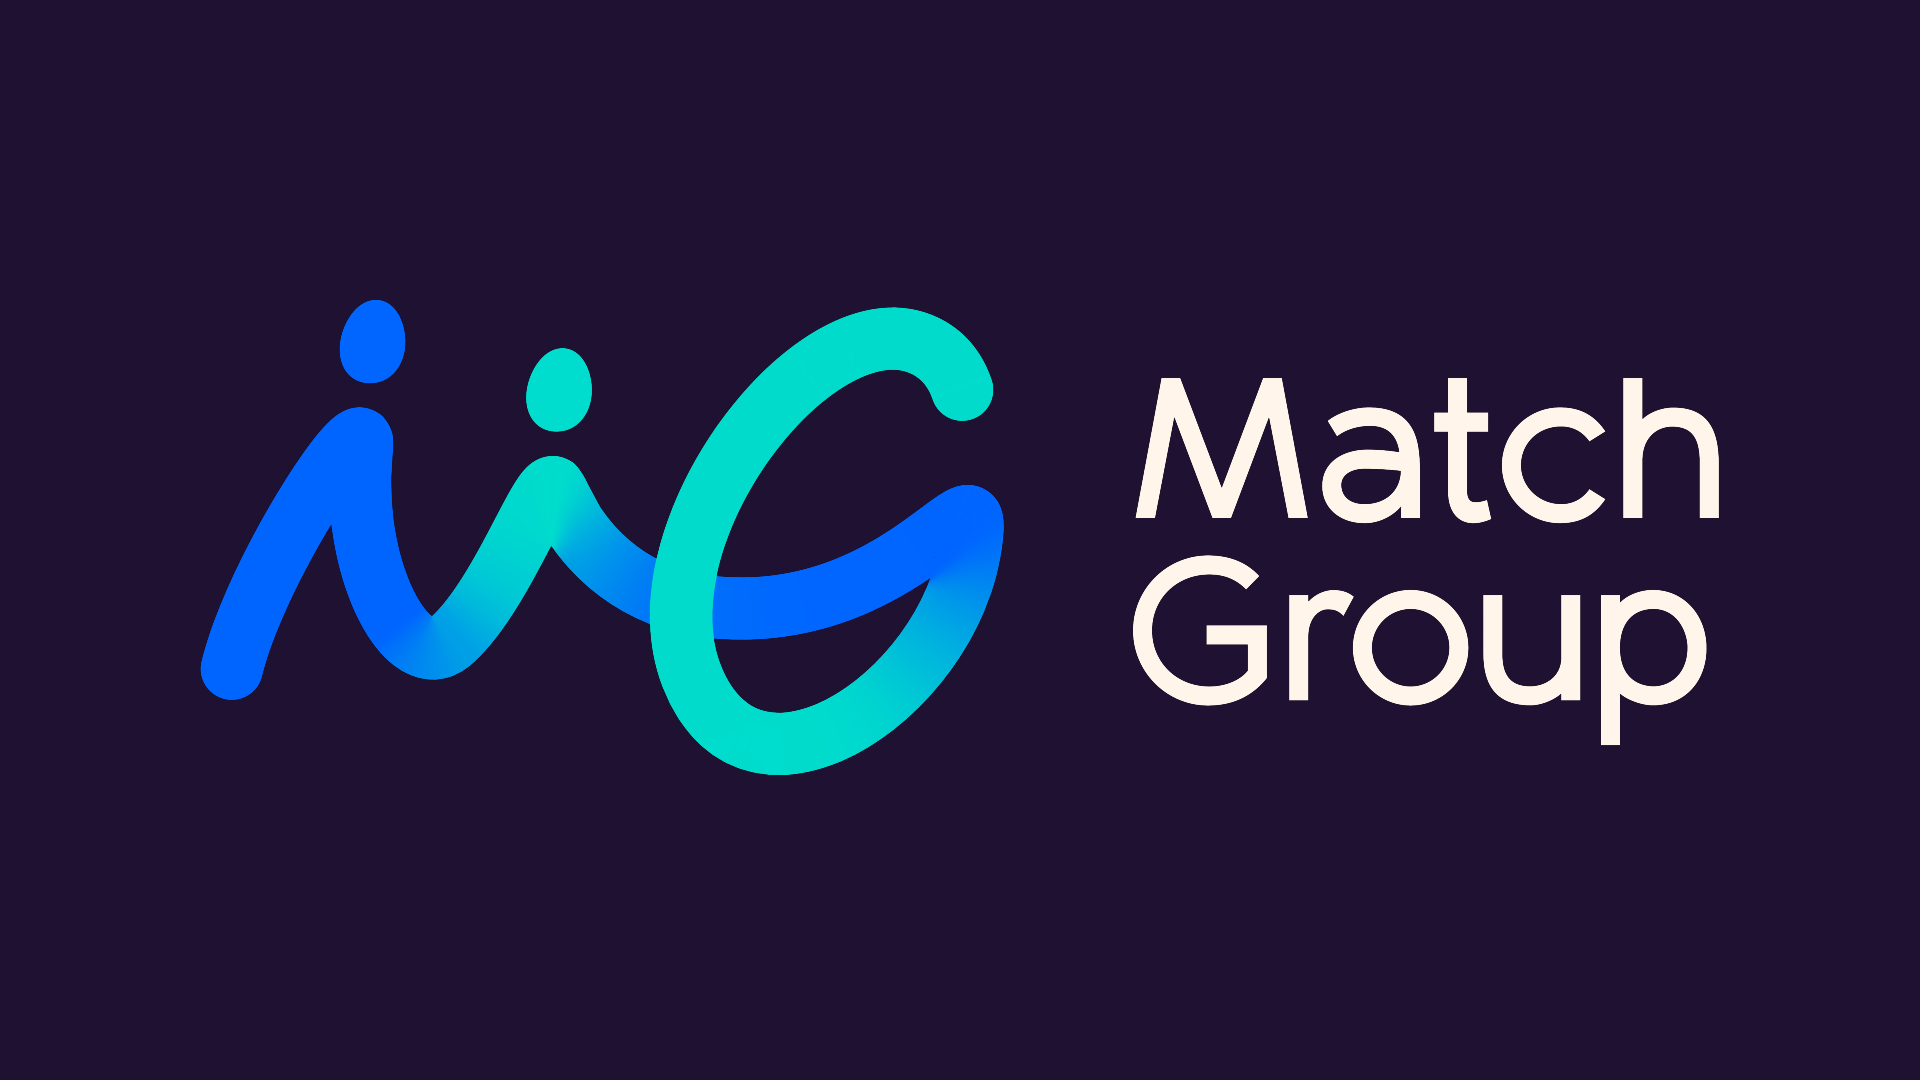 Match Group Completes Acquisition of Hyperconnect For $1.725 Billion